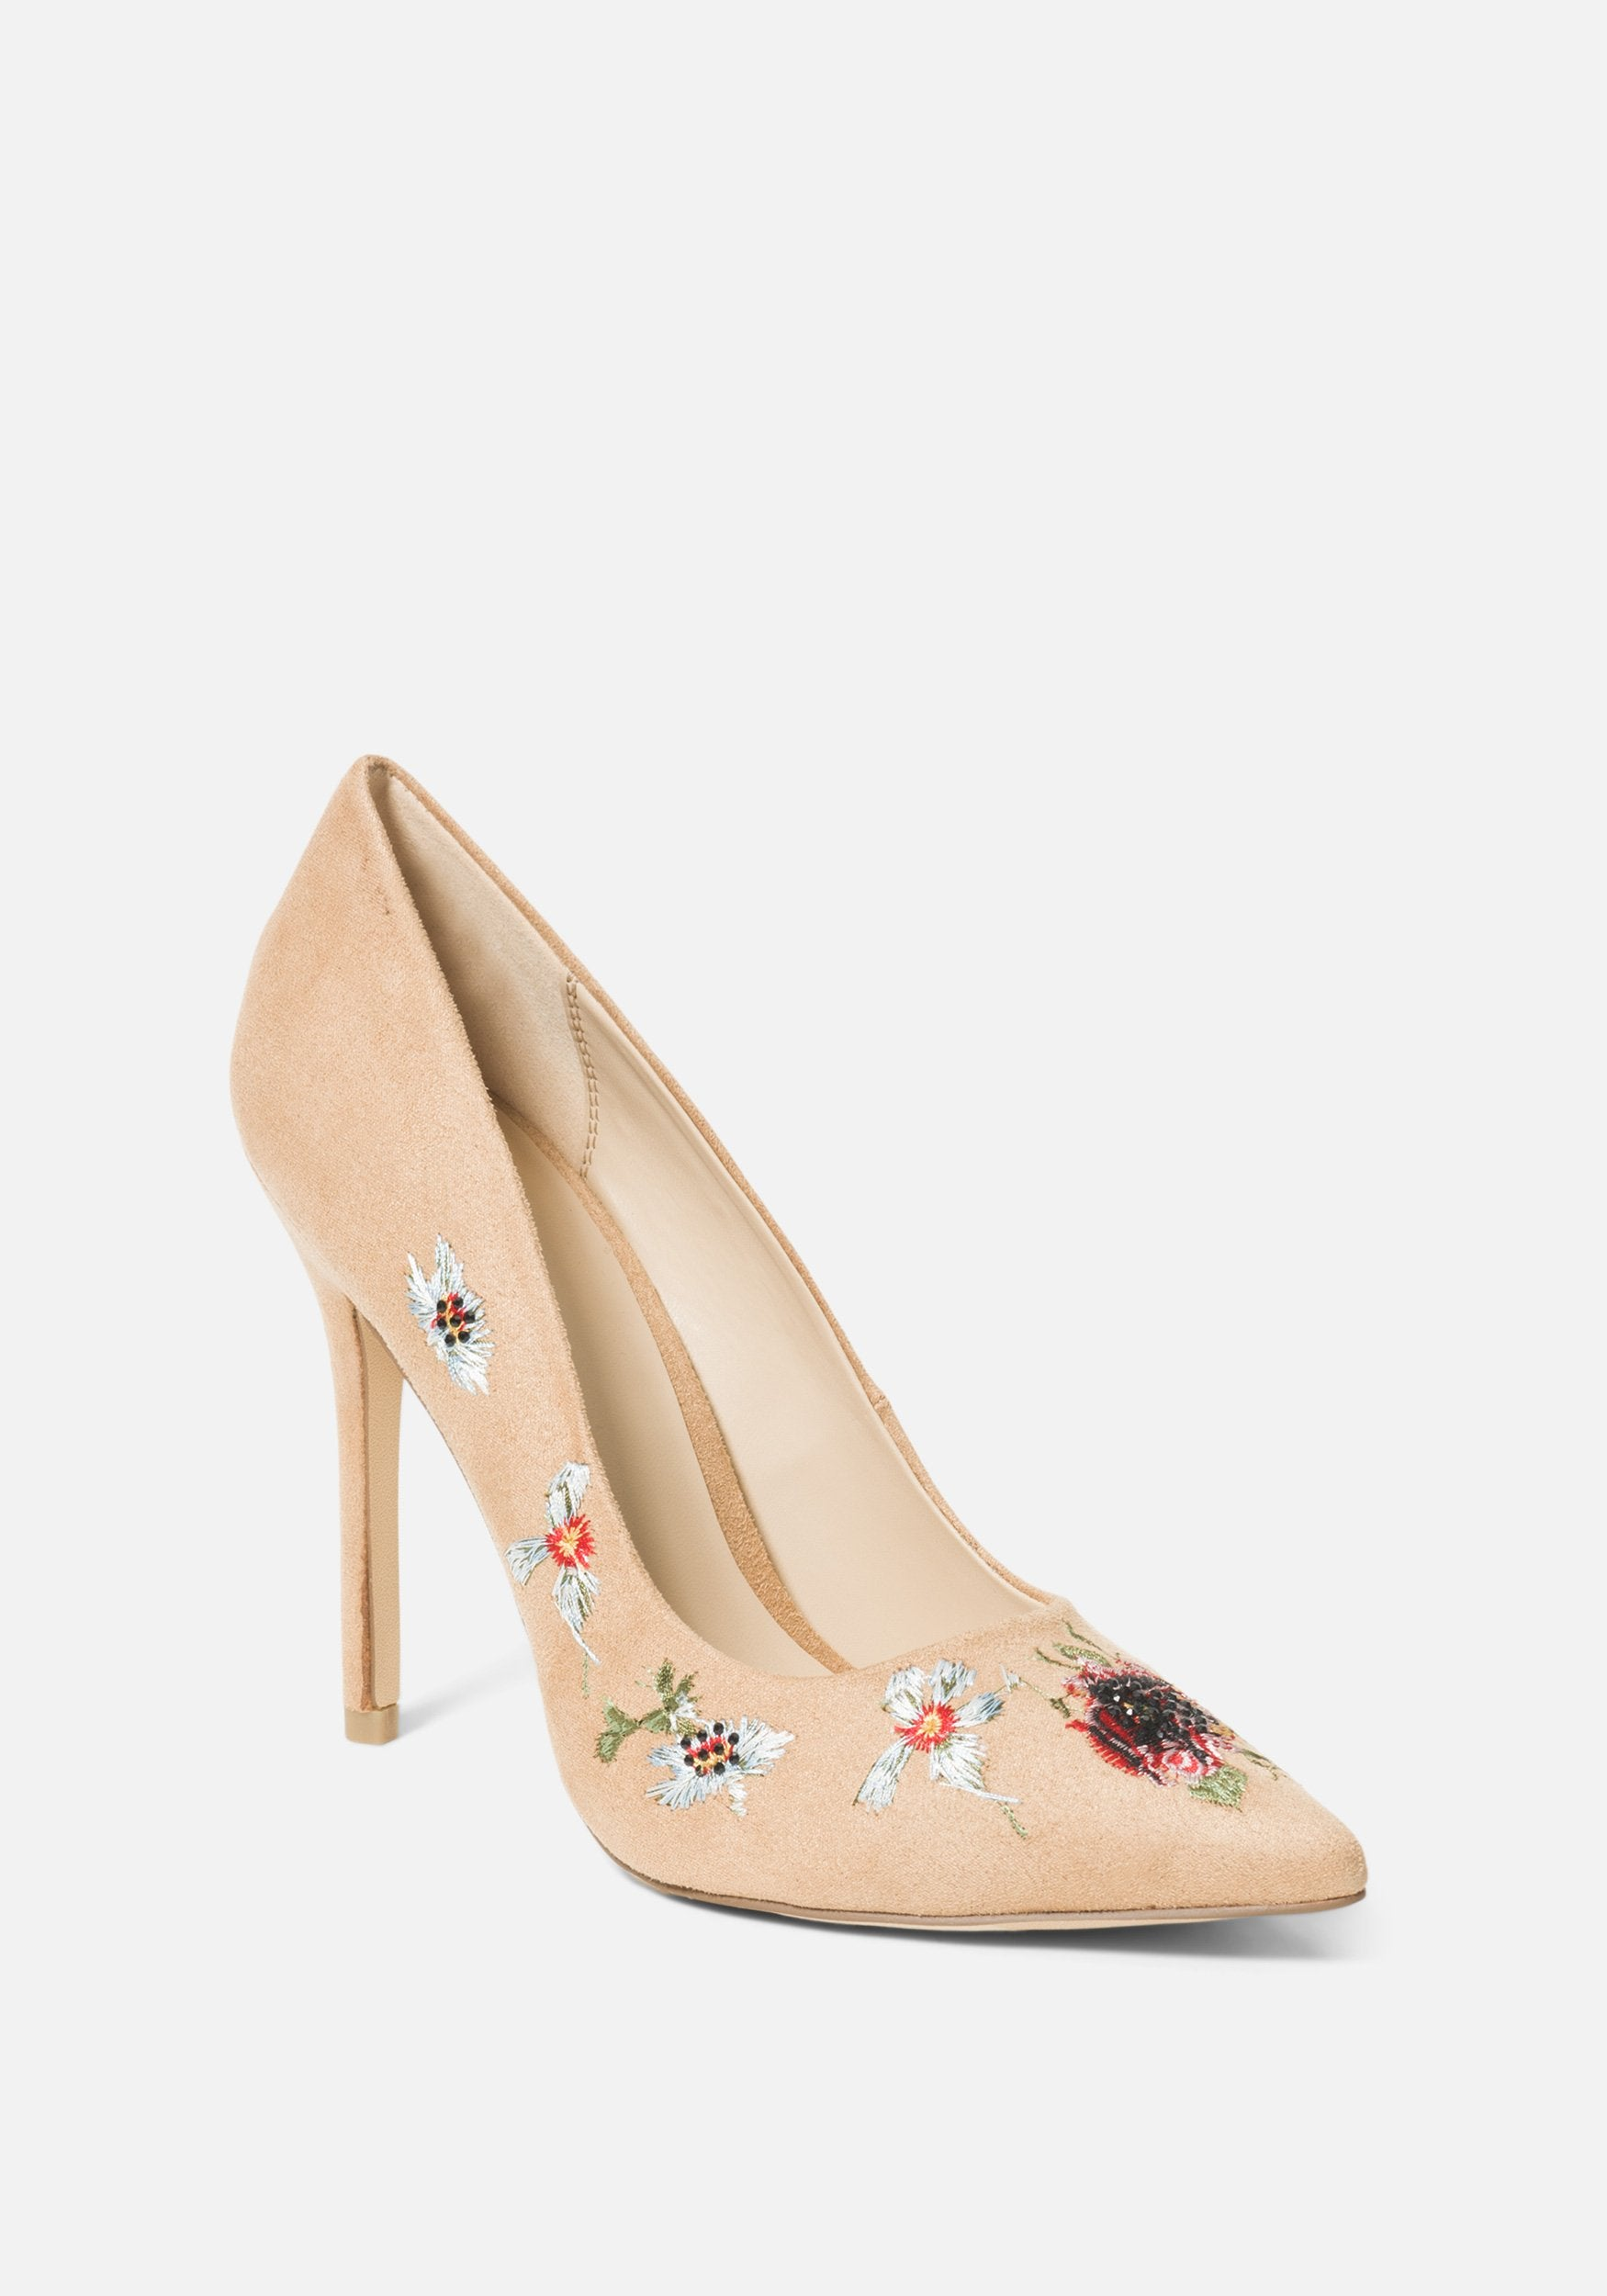 Bebe Women's Leyton Embroidery Pumps, Size 6 in Camel Synthetic